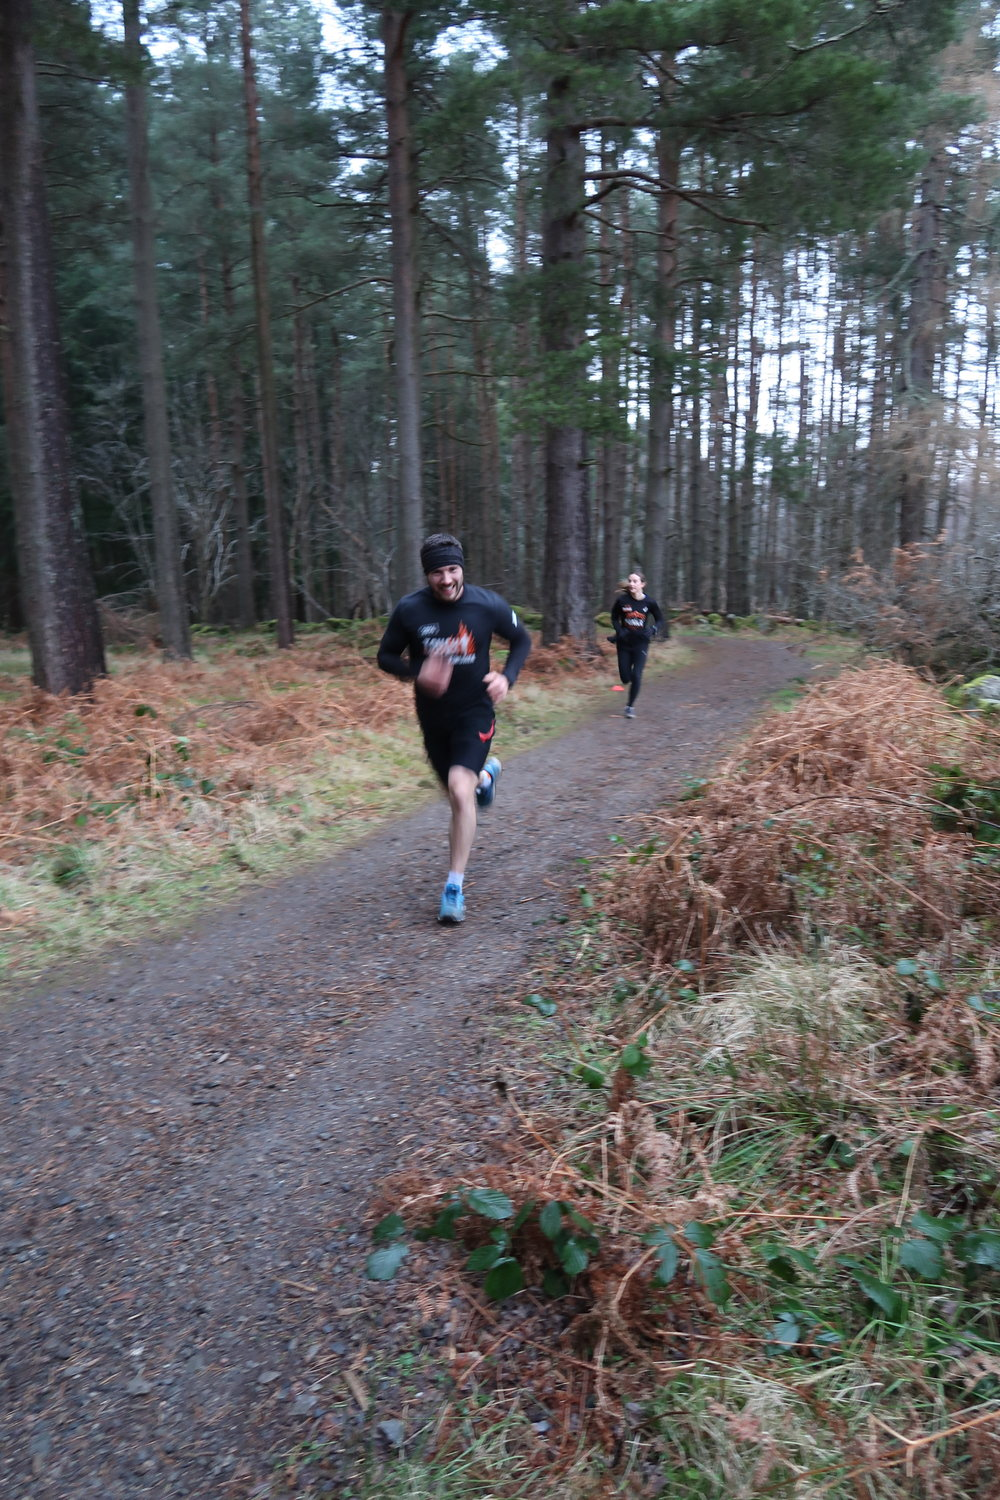 The competition was on, pushing it up the hills!